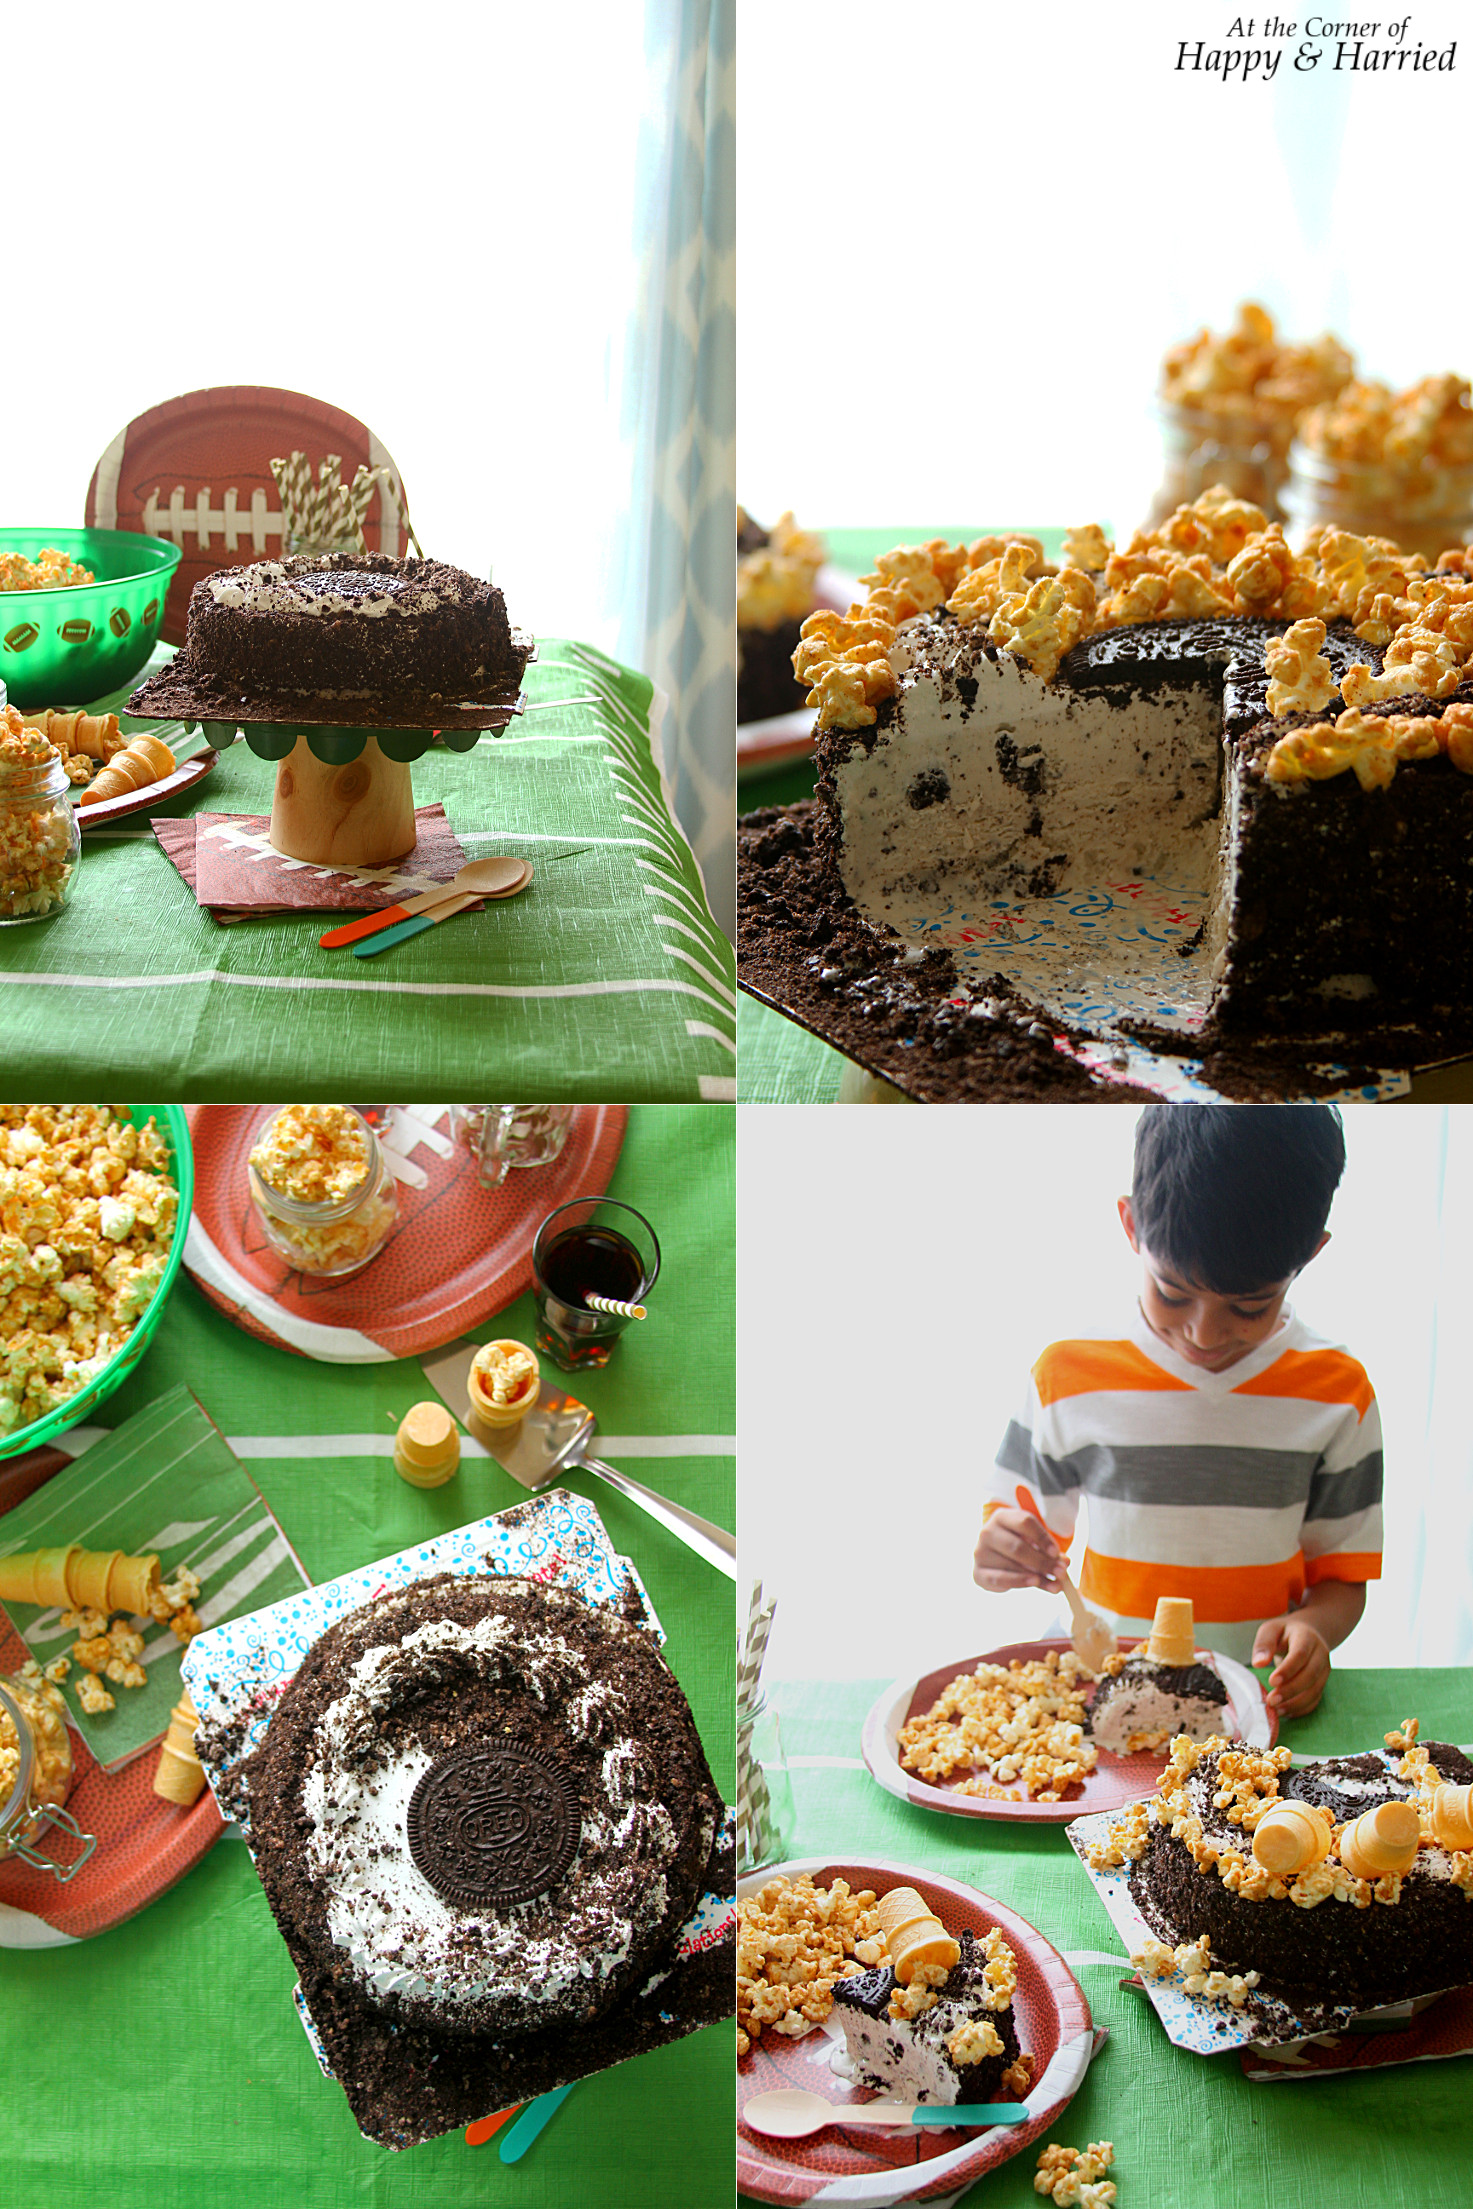 Cinnamon Sugar Popcorn & Ice Cream Cakes: A No-Fuss Game Day Combo